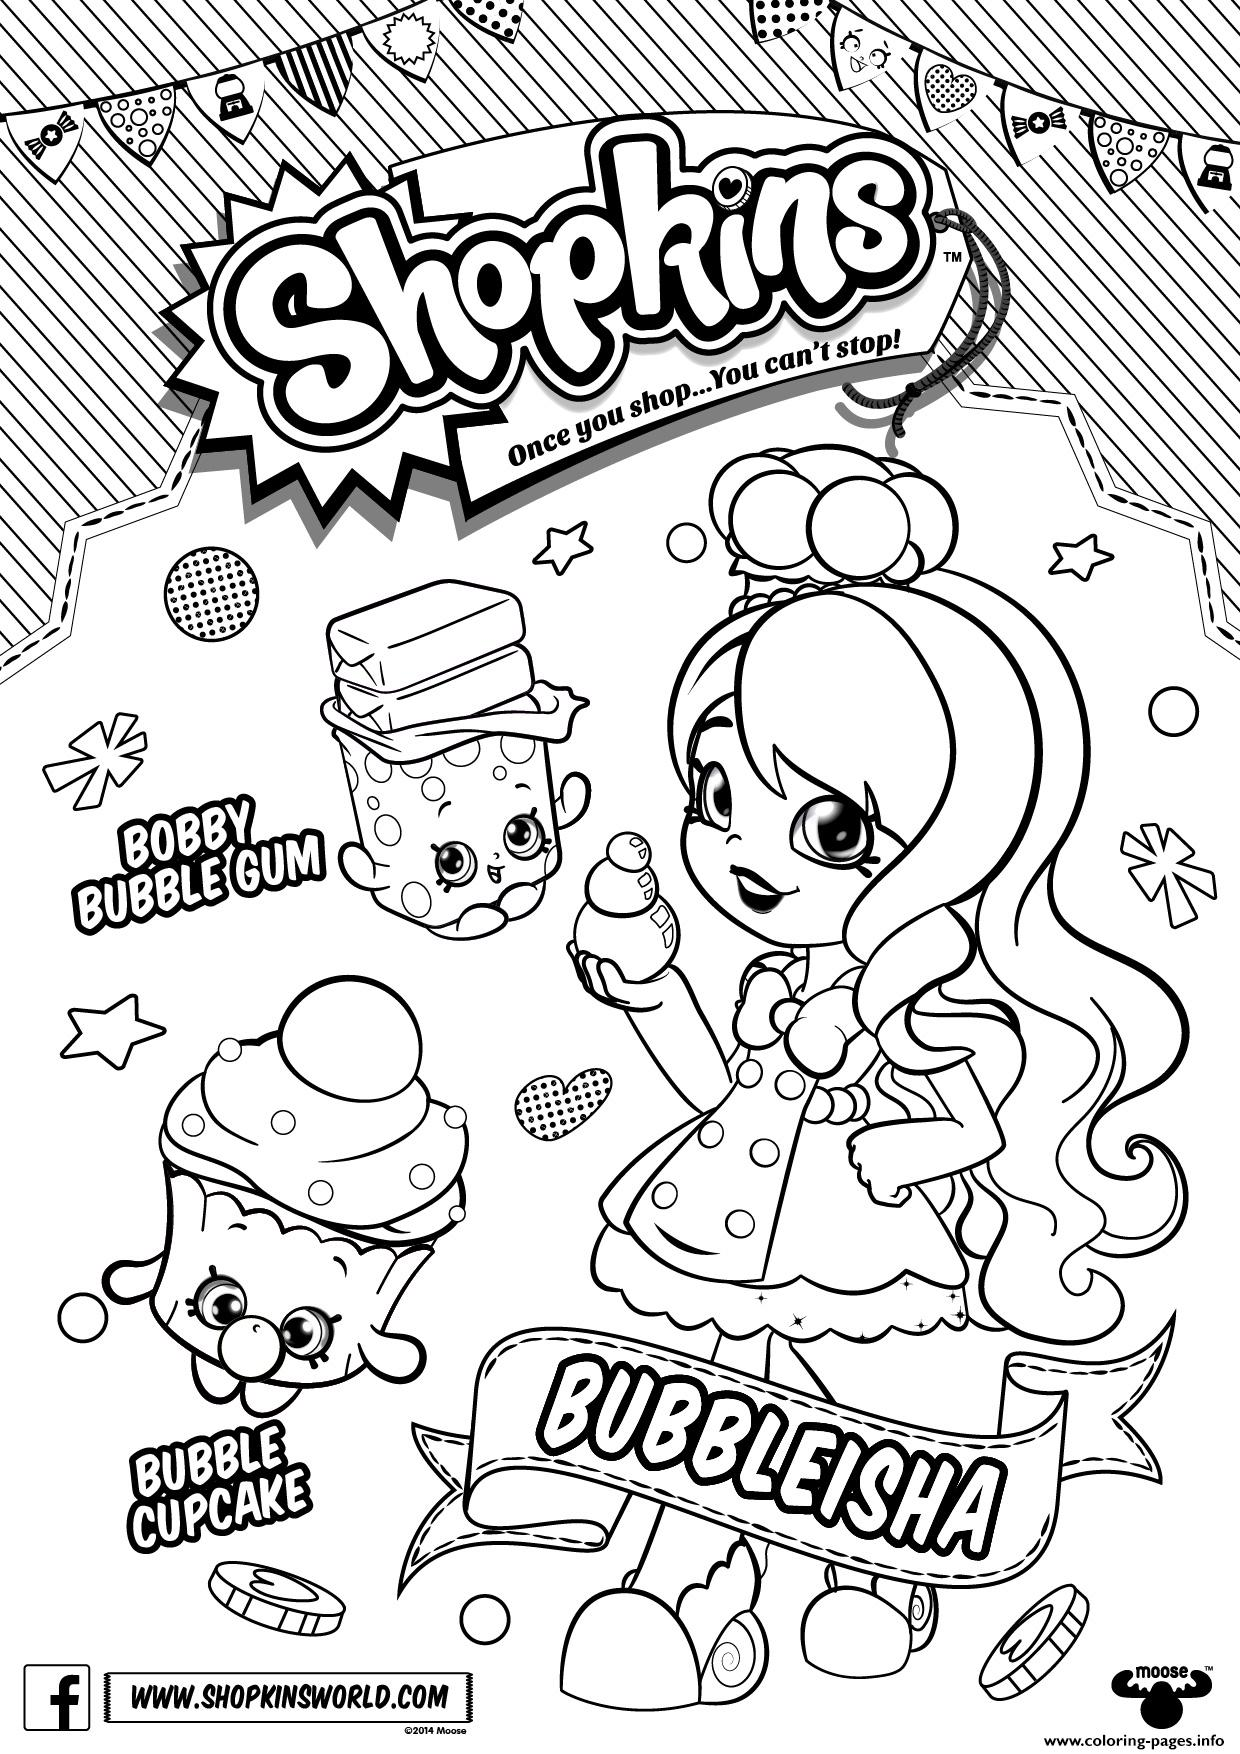 Bubbleisha Shopkins Shoppies With Bubble Gum Coloring